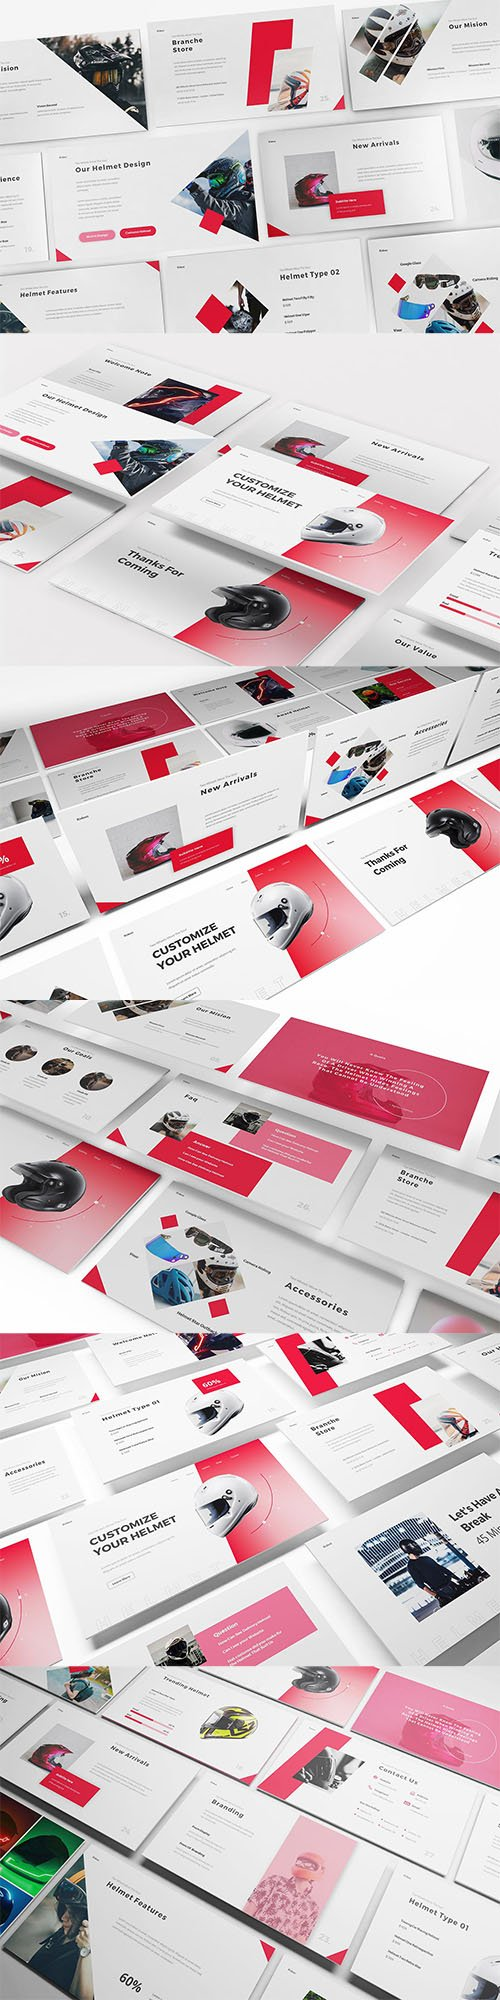 Helmet Shop Powerpoint, Keynote and Google Slides Template